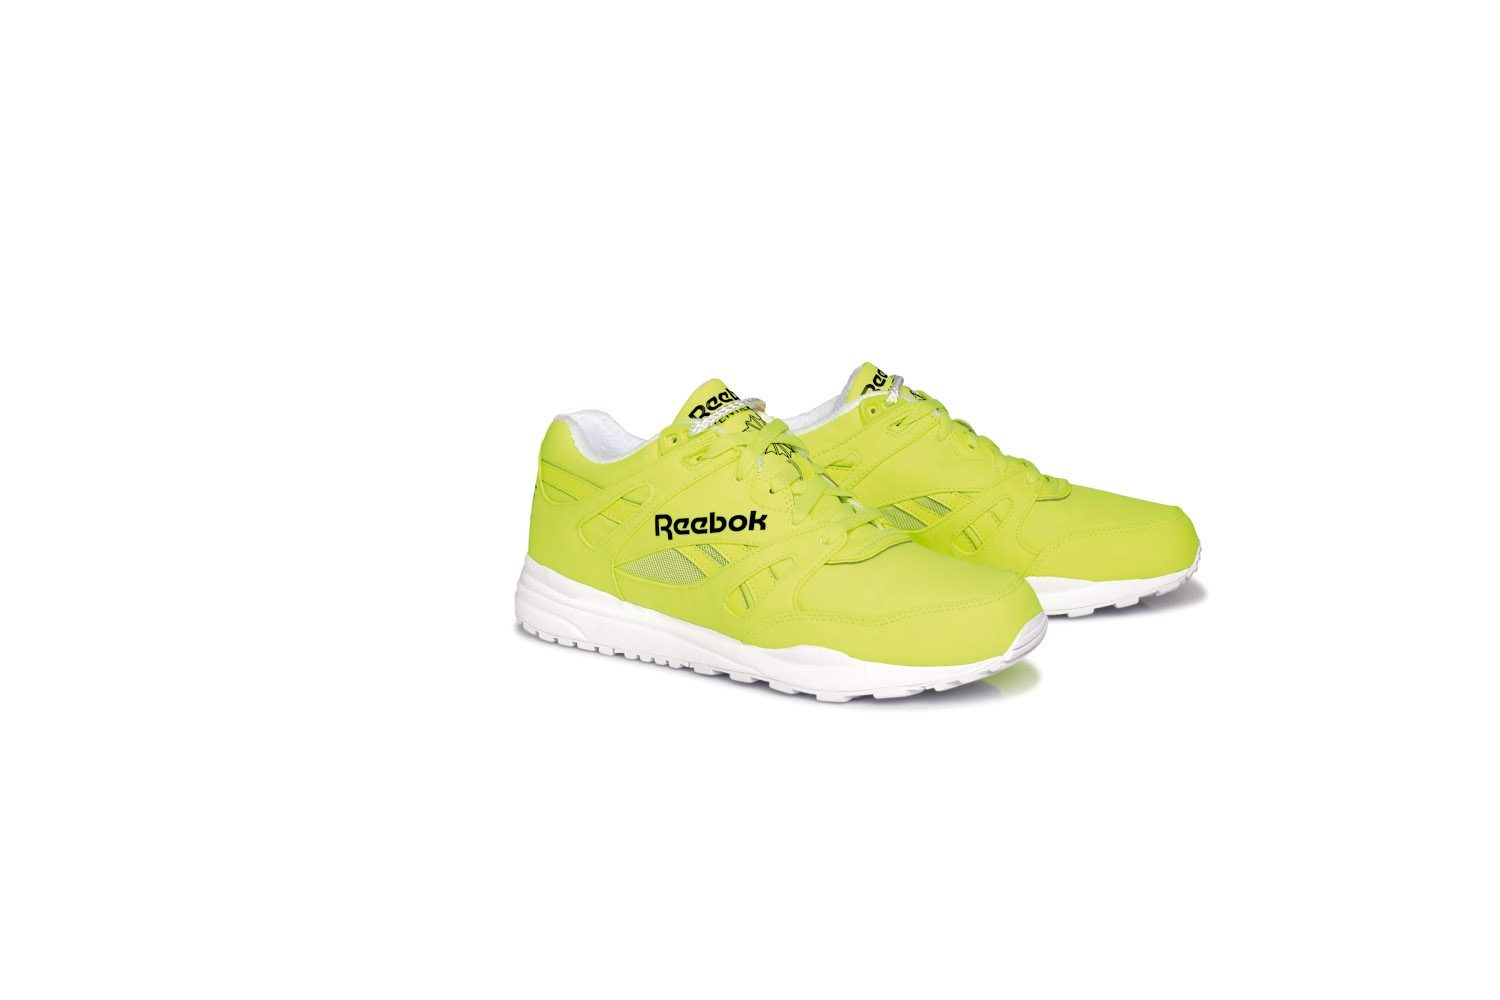 Reebok Classic Ventilator Day Glo Pack 7